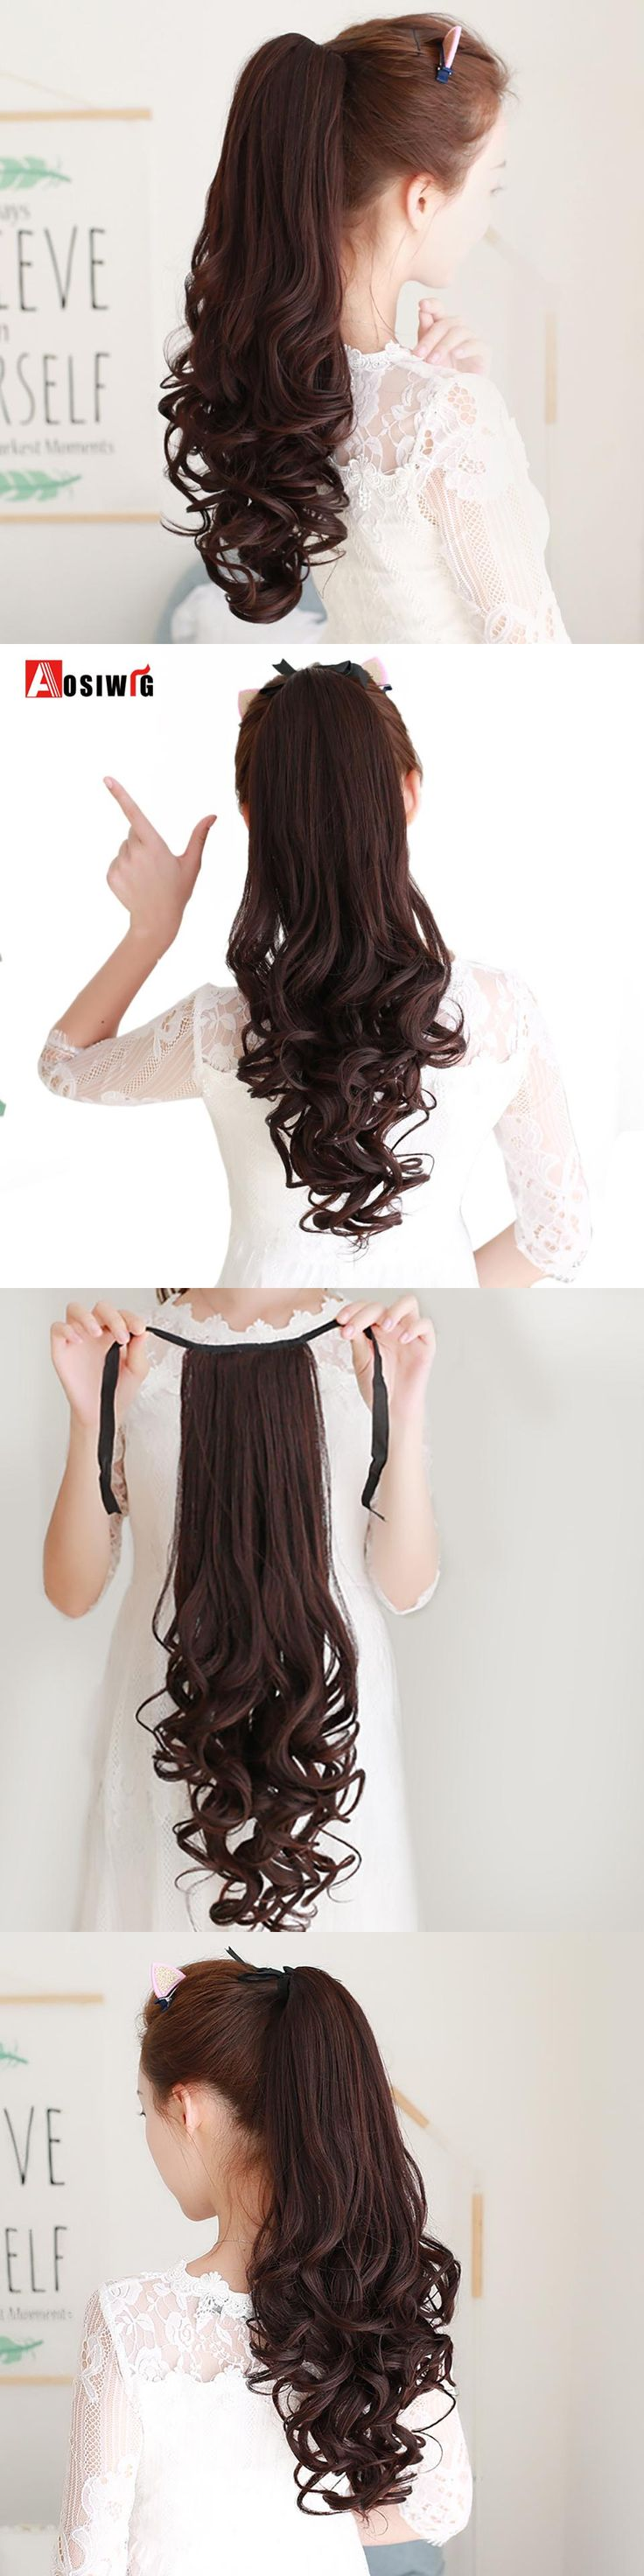 AOSIWIG  22'' Long Curly Ponytail Hair Pieces Clip In Fake Hair Extensions Long Curly Hair Tails Clip Flip Ponytail Hairstyles